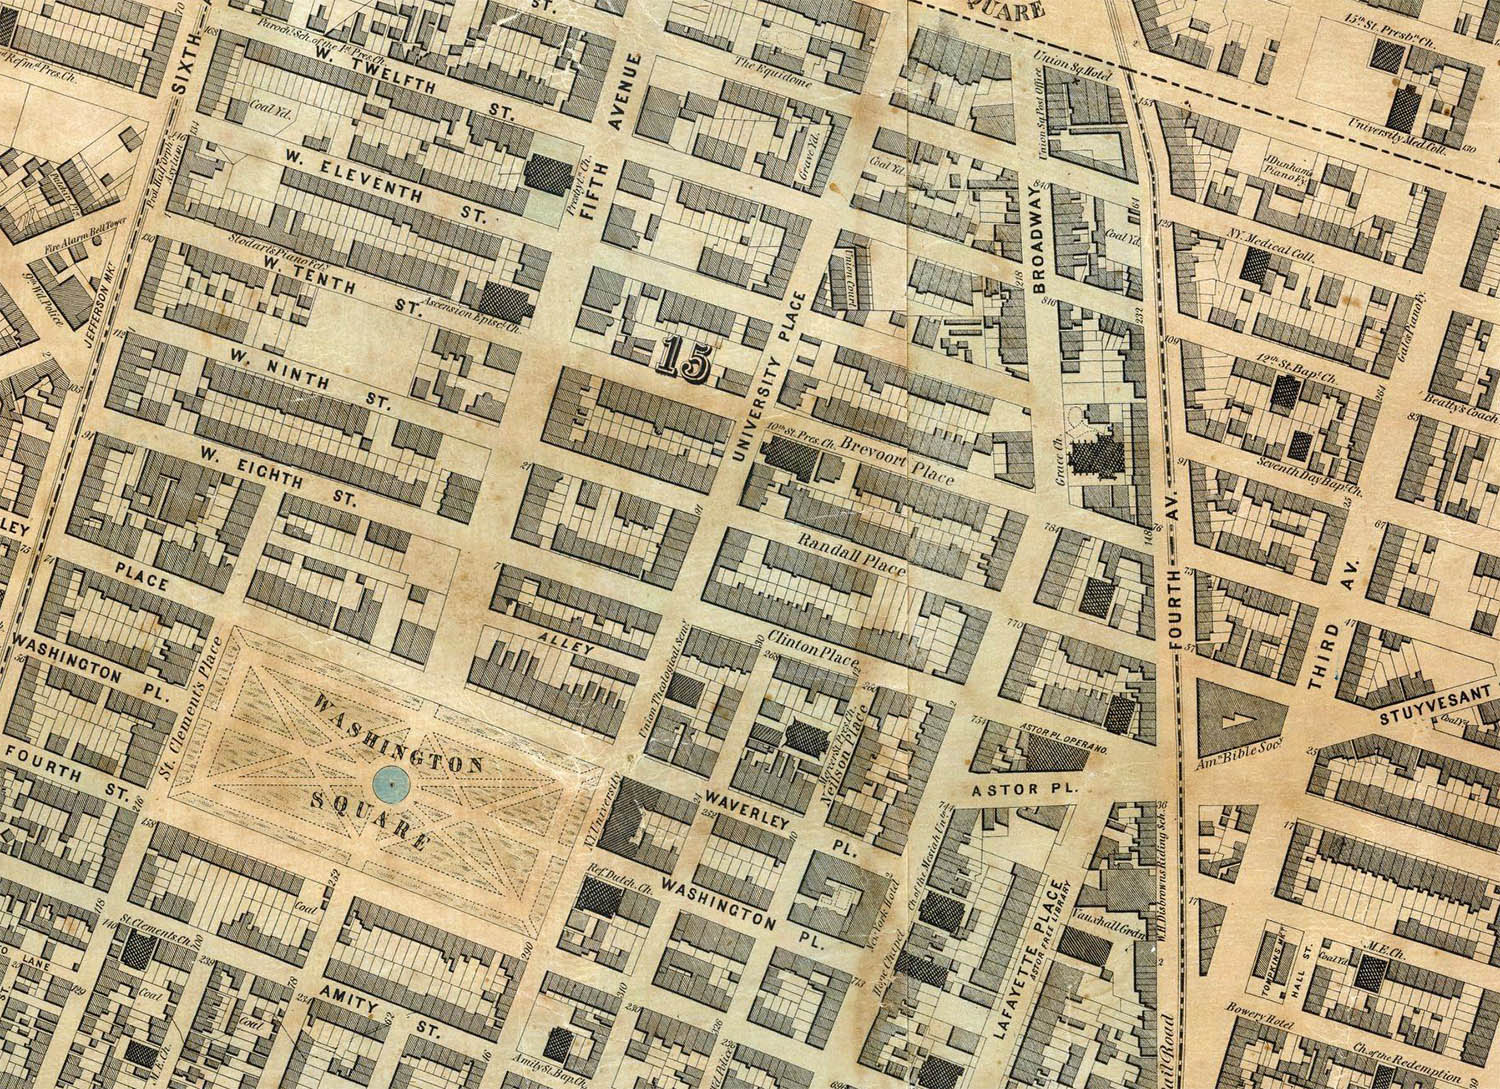 The Streets Of New York - Map of new york city streets